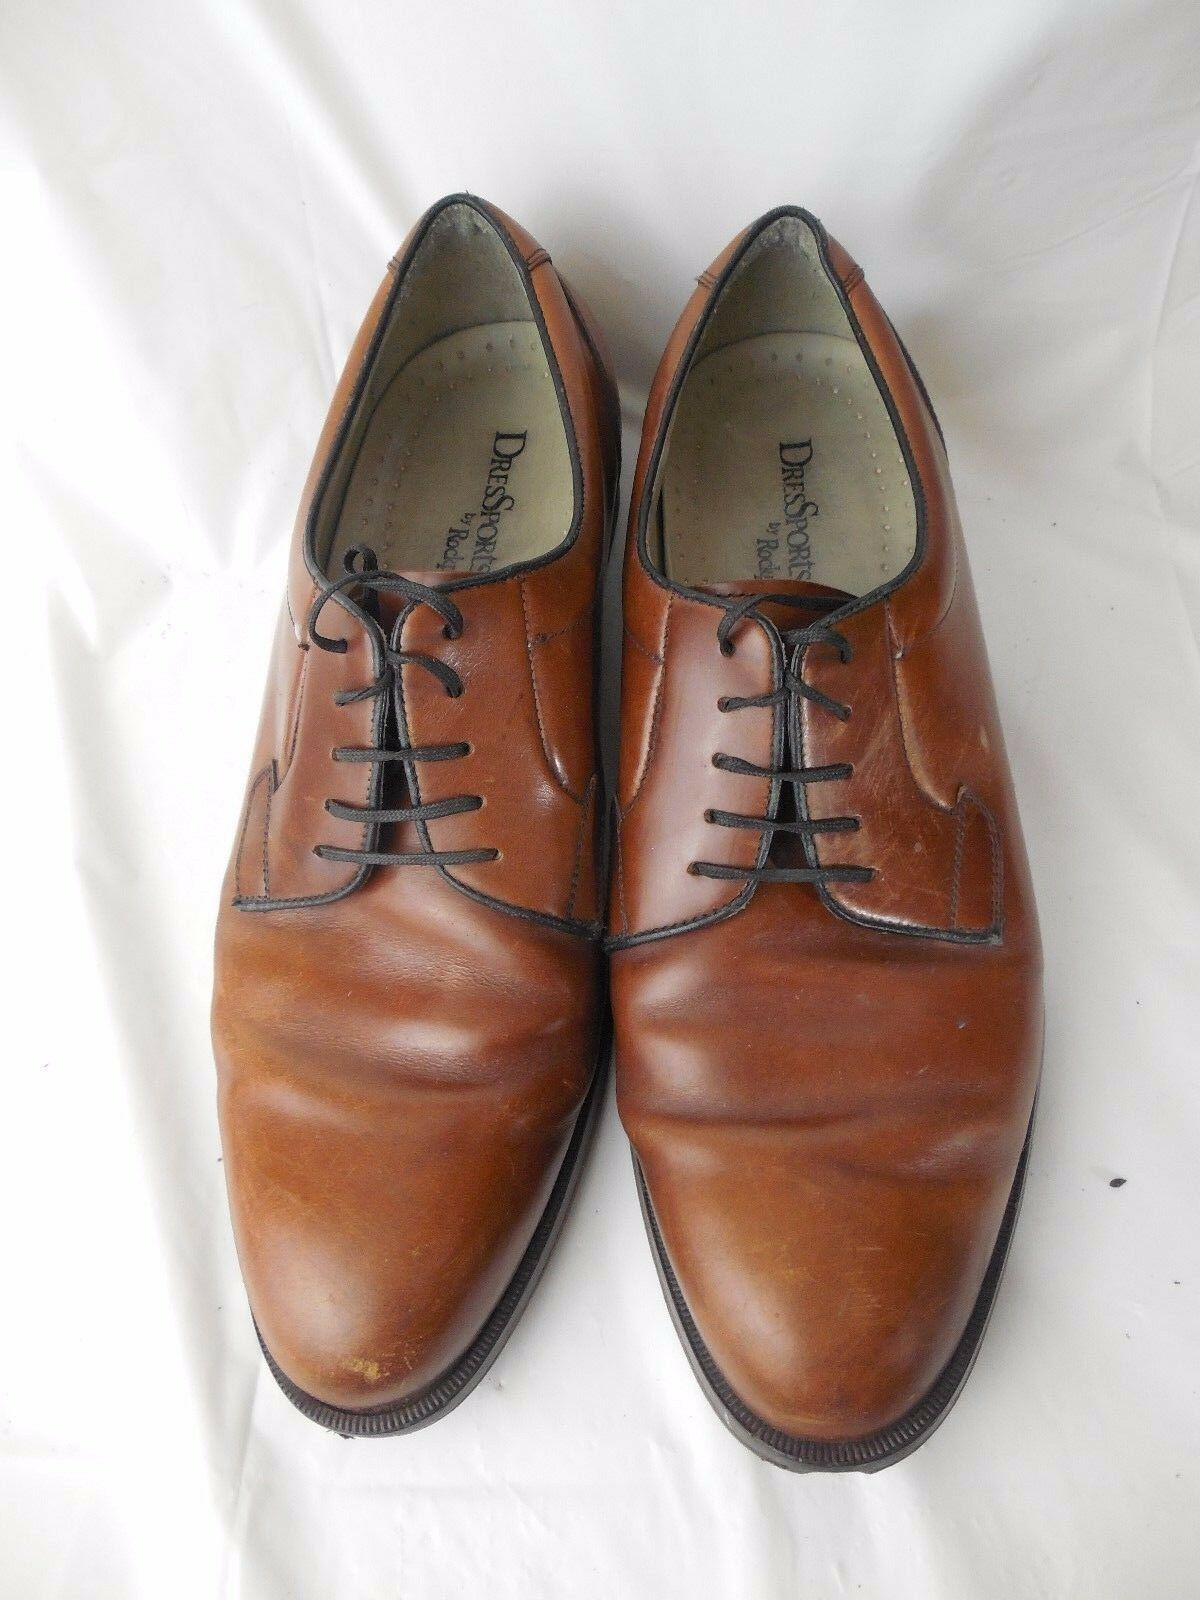 Rockport DresSport Oxford Shoes Mens Mens Mens 9 N Narrow Vibram Soles M3441 Brown Leather dc66e5